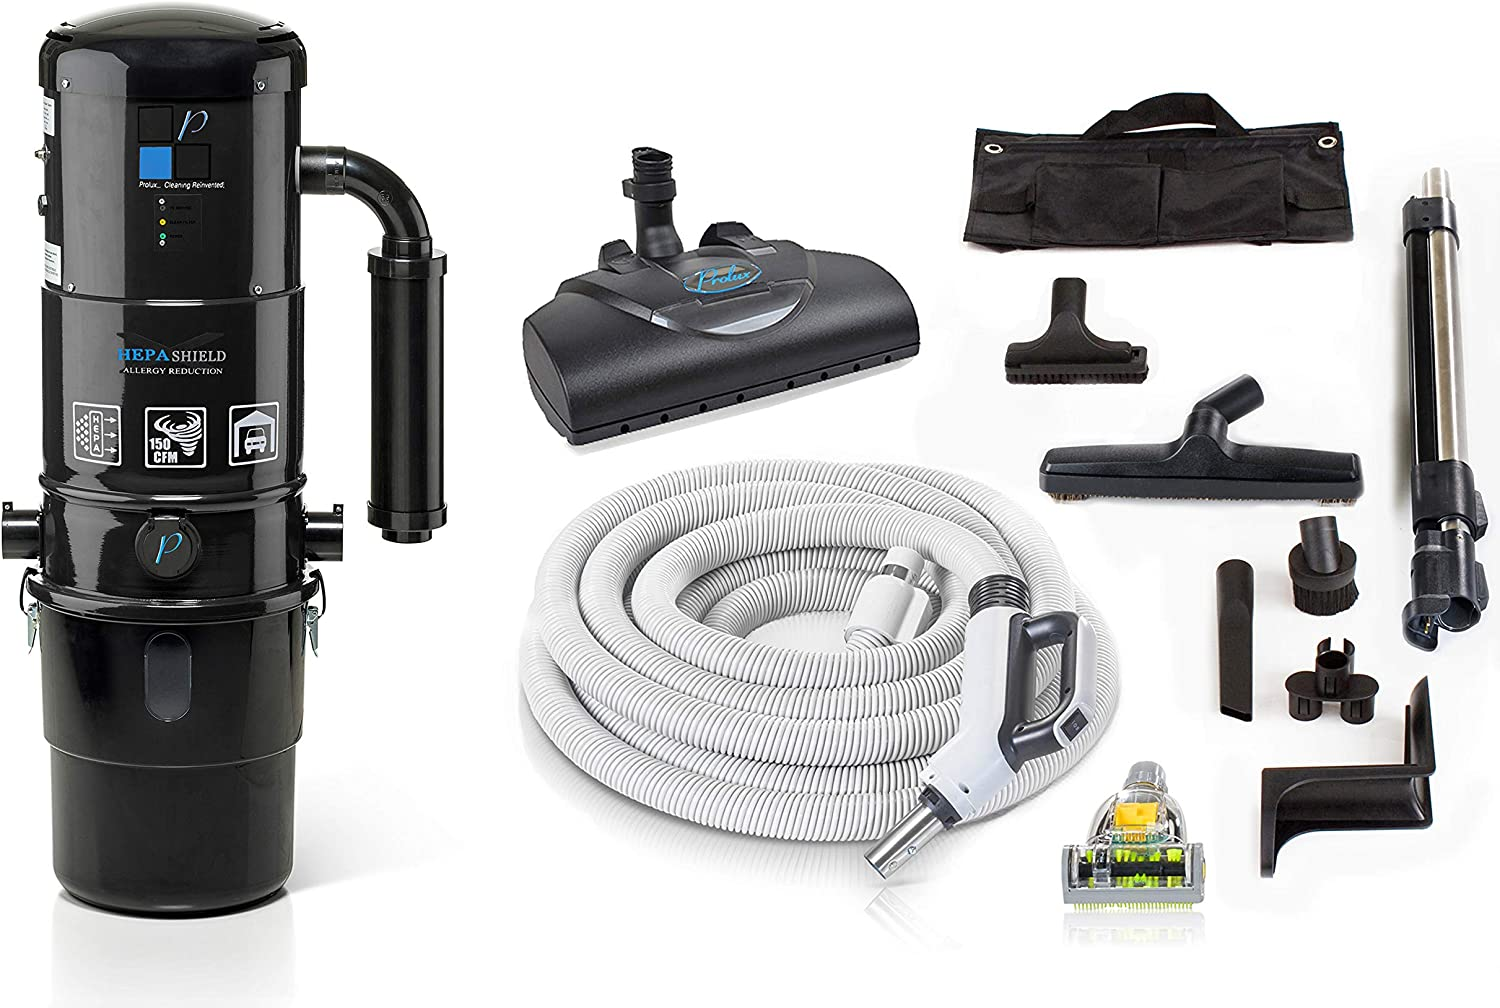 Prolux CV12000 Black Central Vacuum Unit System with Prolux Electric Hose Power Nozzle Kit and 25 Year Warranty